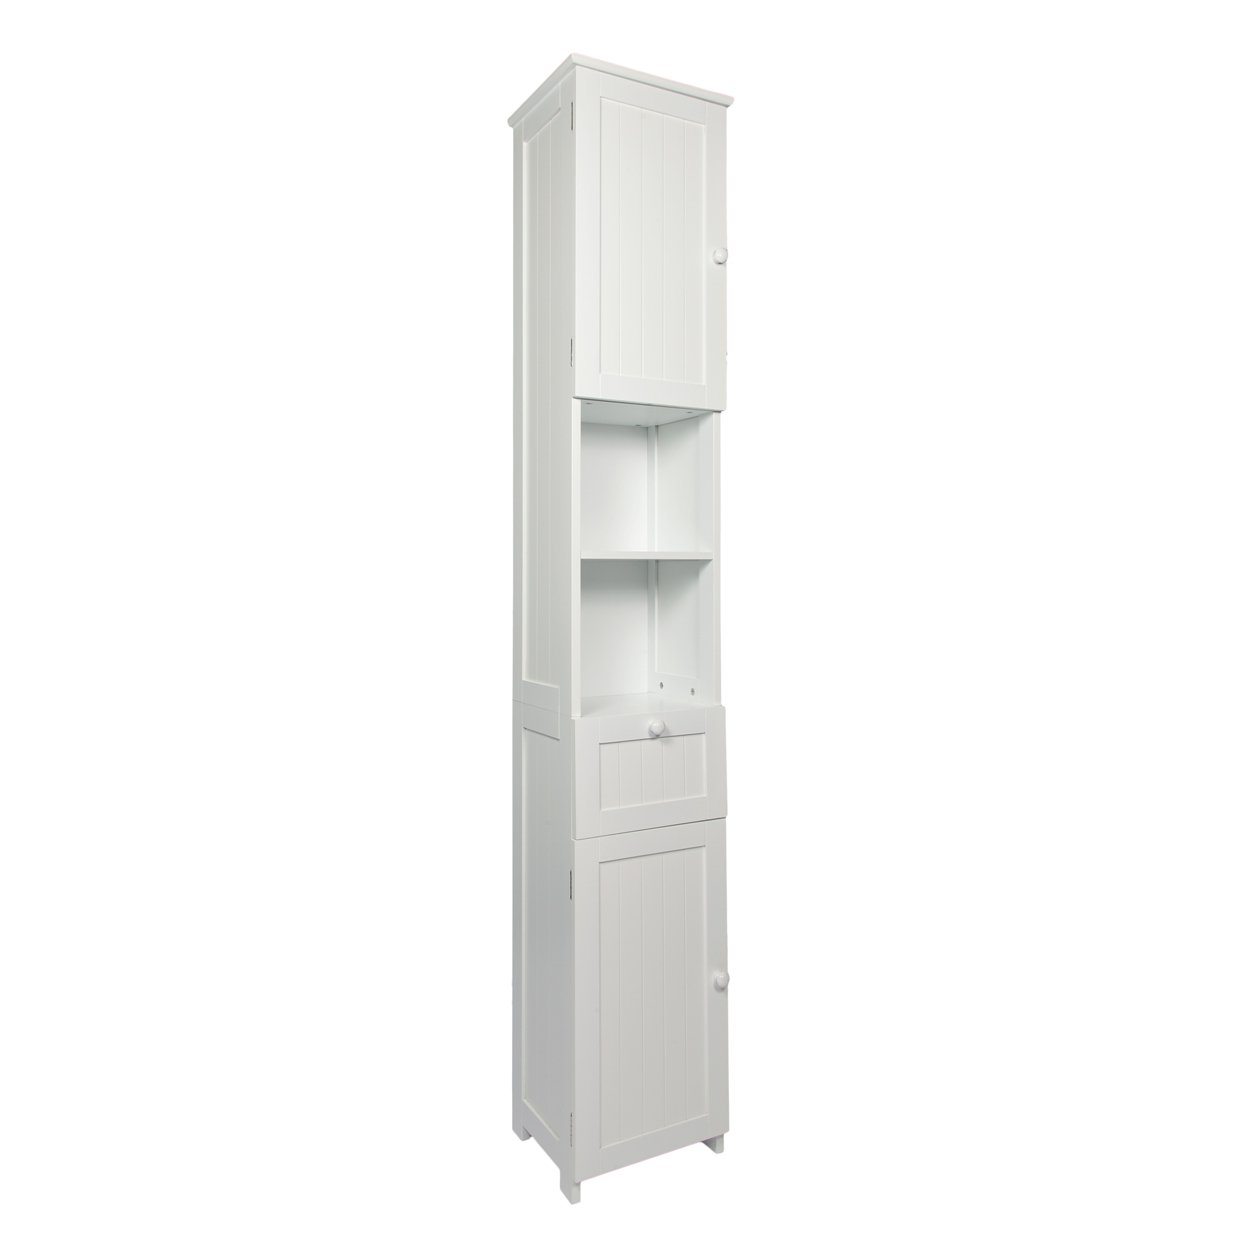 woodluv slim shaker tall boy free standing bathroom storage cabinet unit white